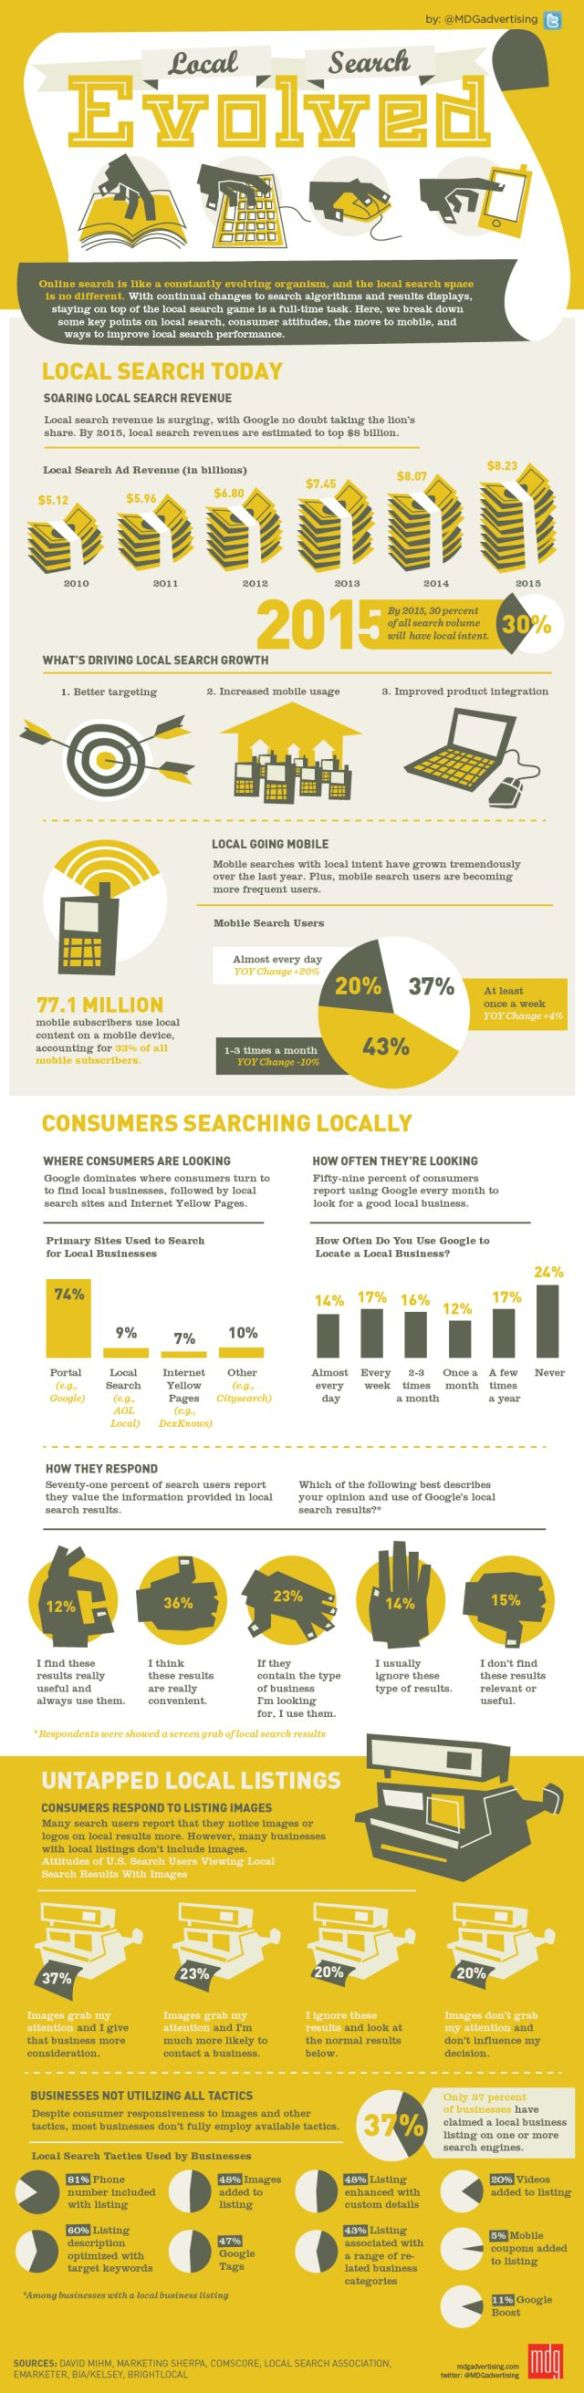 Local search evolved infographic